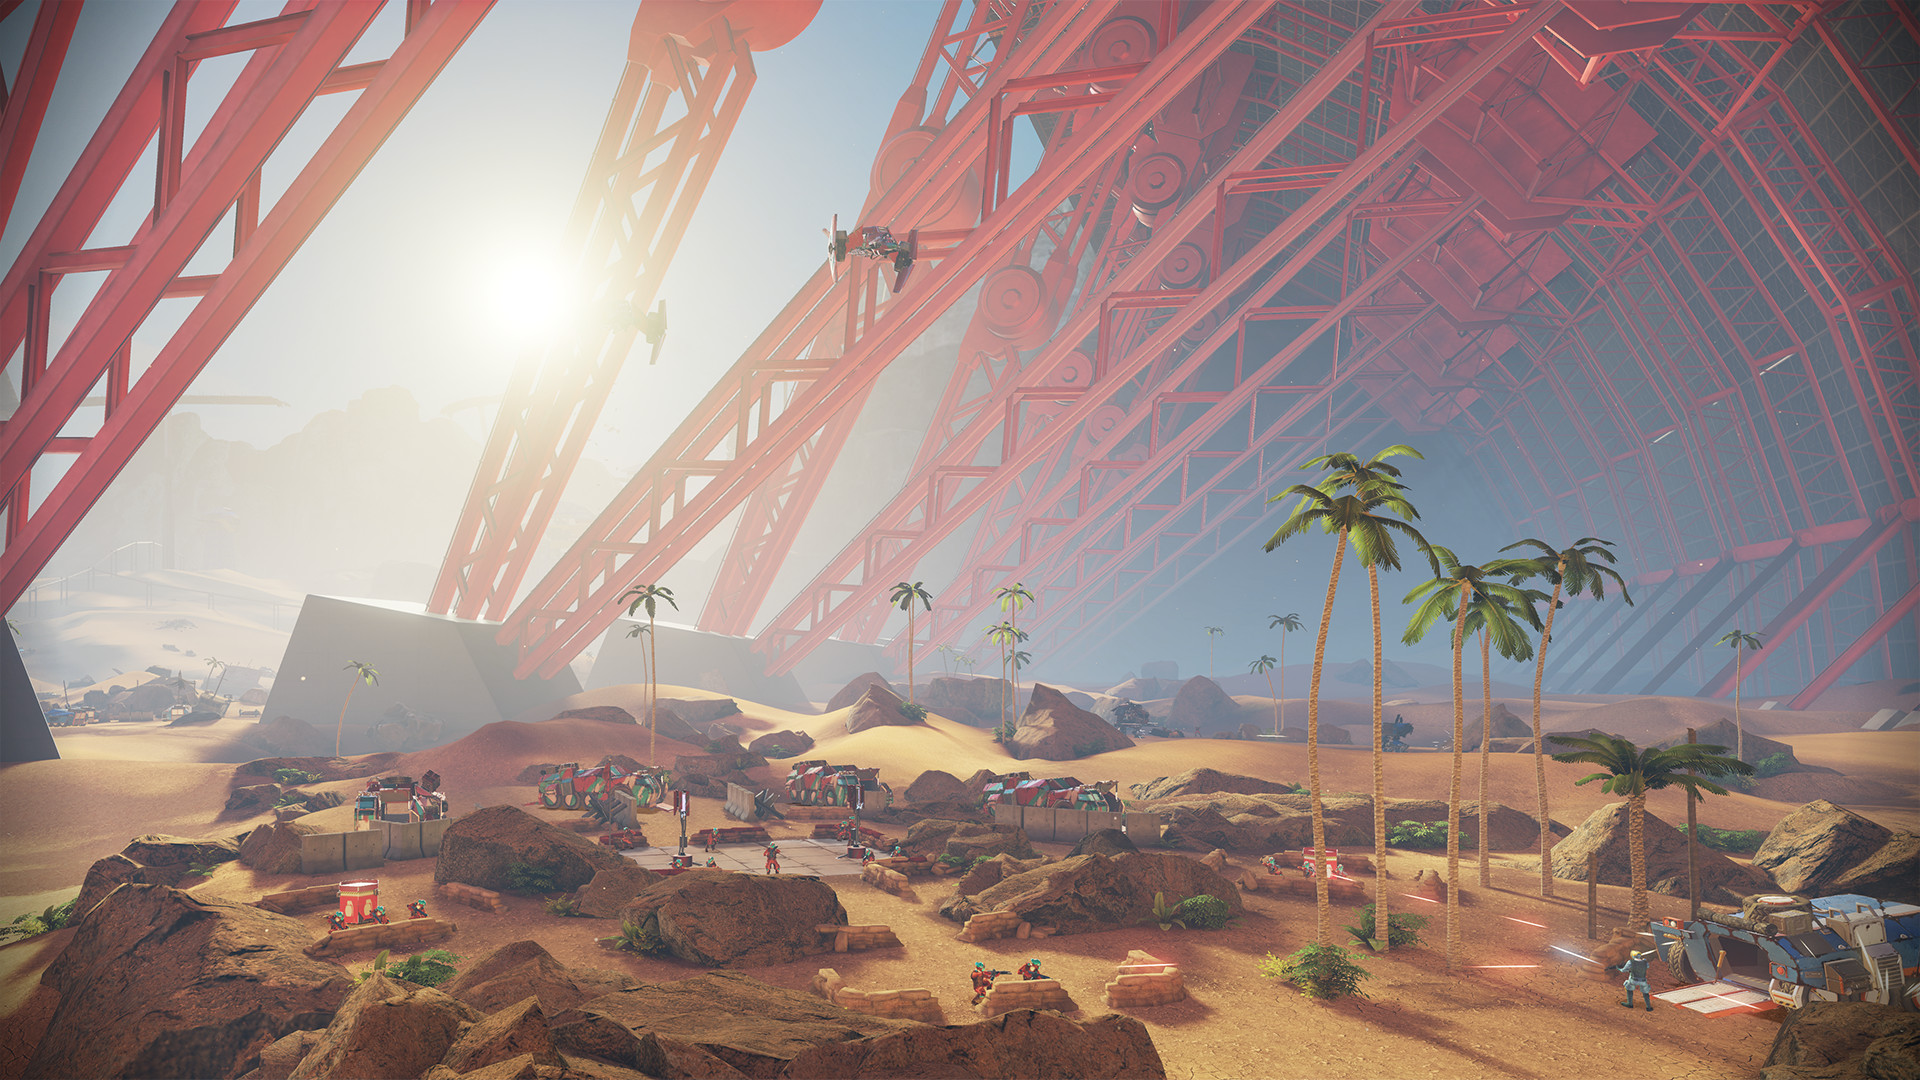 Landfall Environments